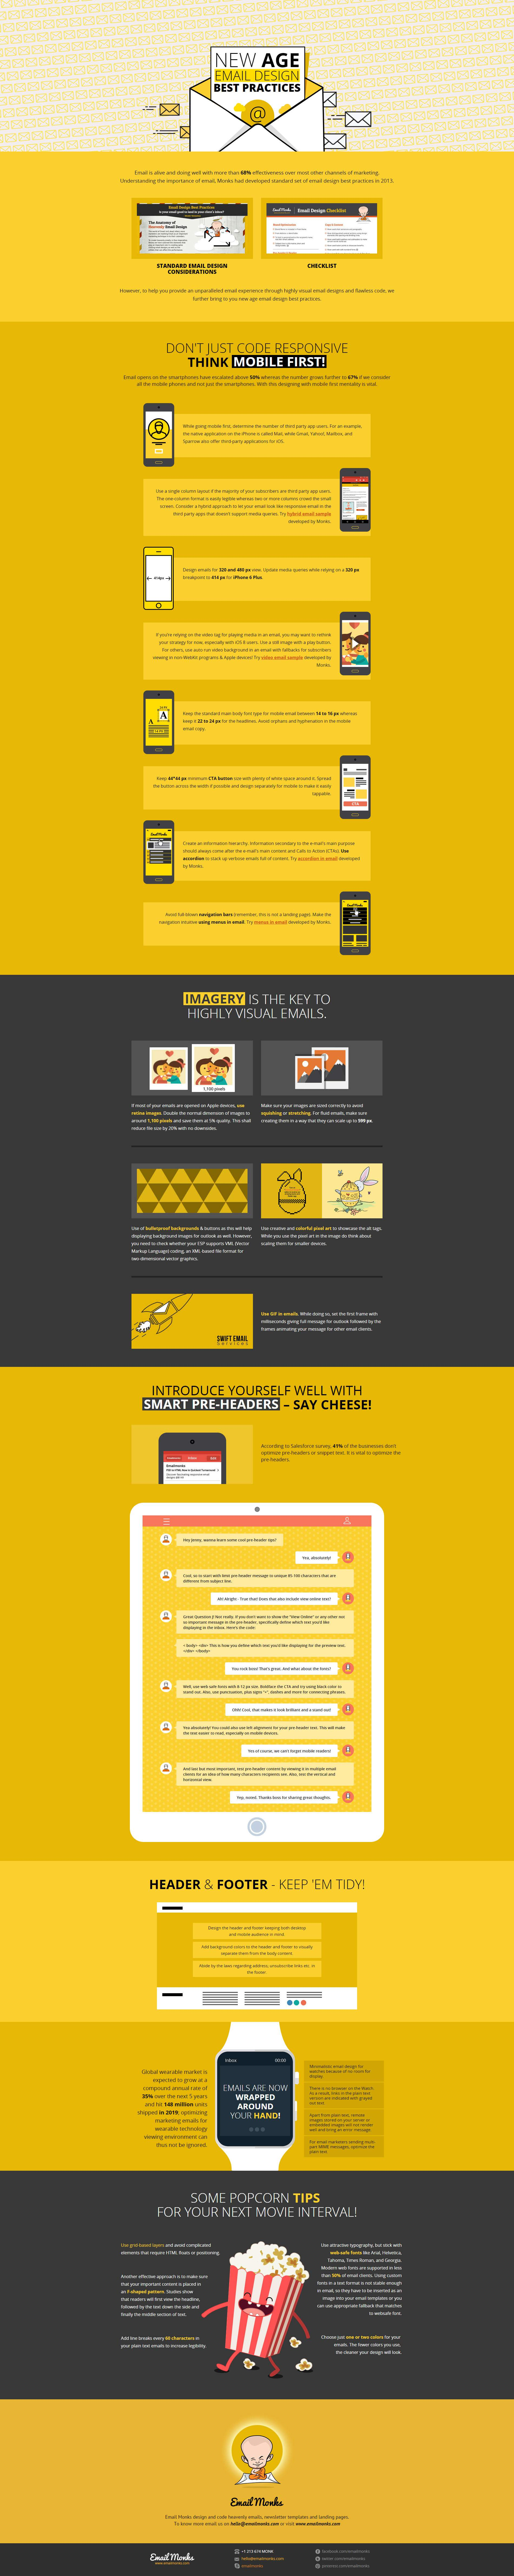 Responsive Email Design Best Practices and Tips - EmailMonks